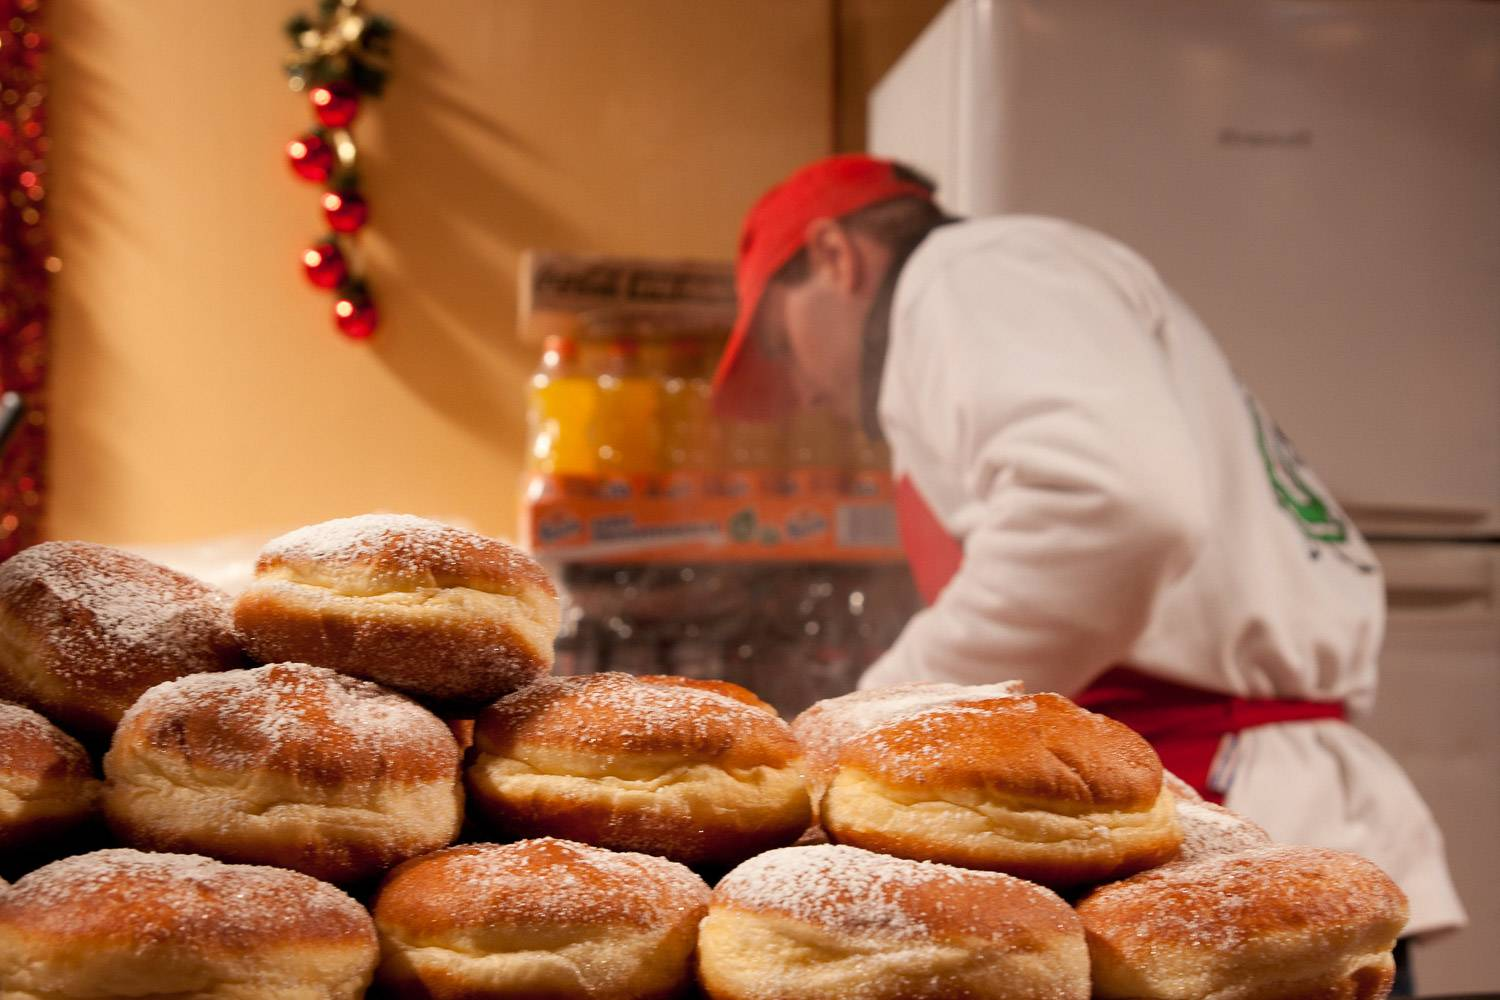 Image of cider donuts in the foreground with the food handler pictured a the back.